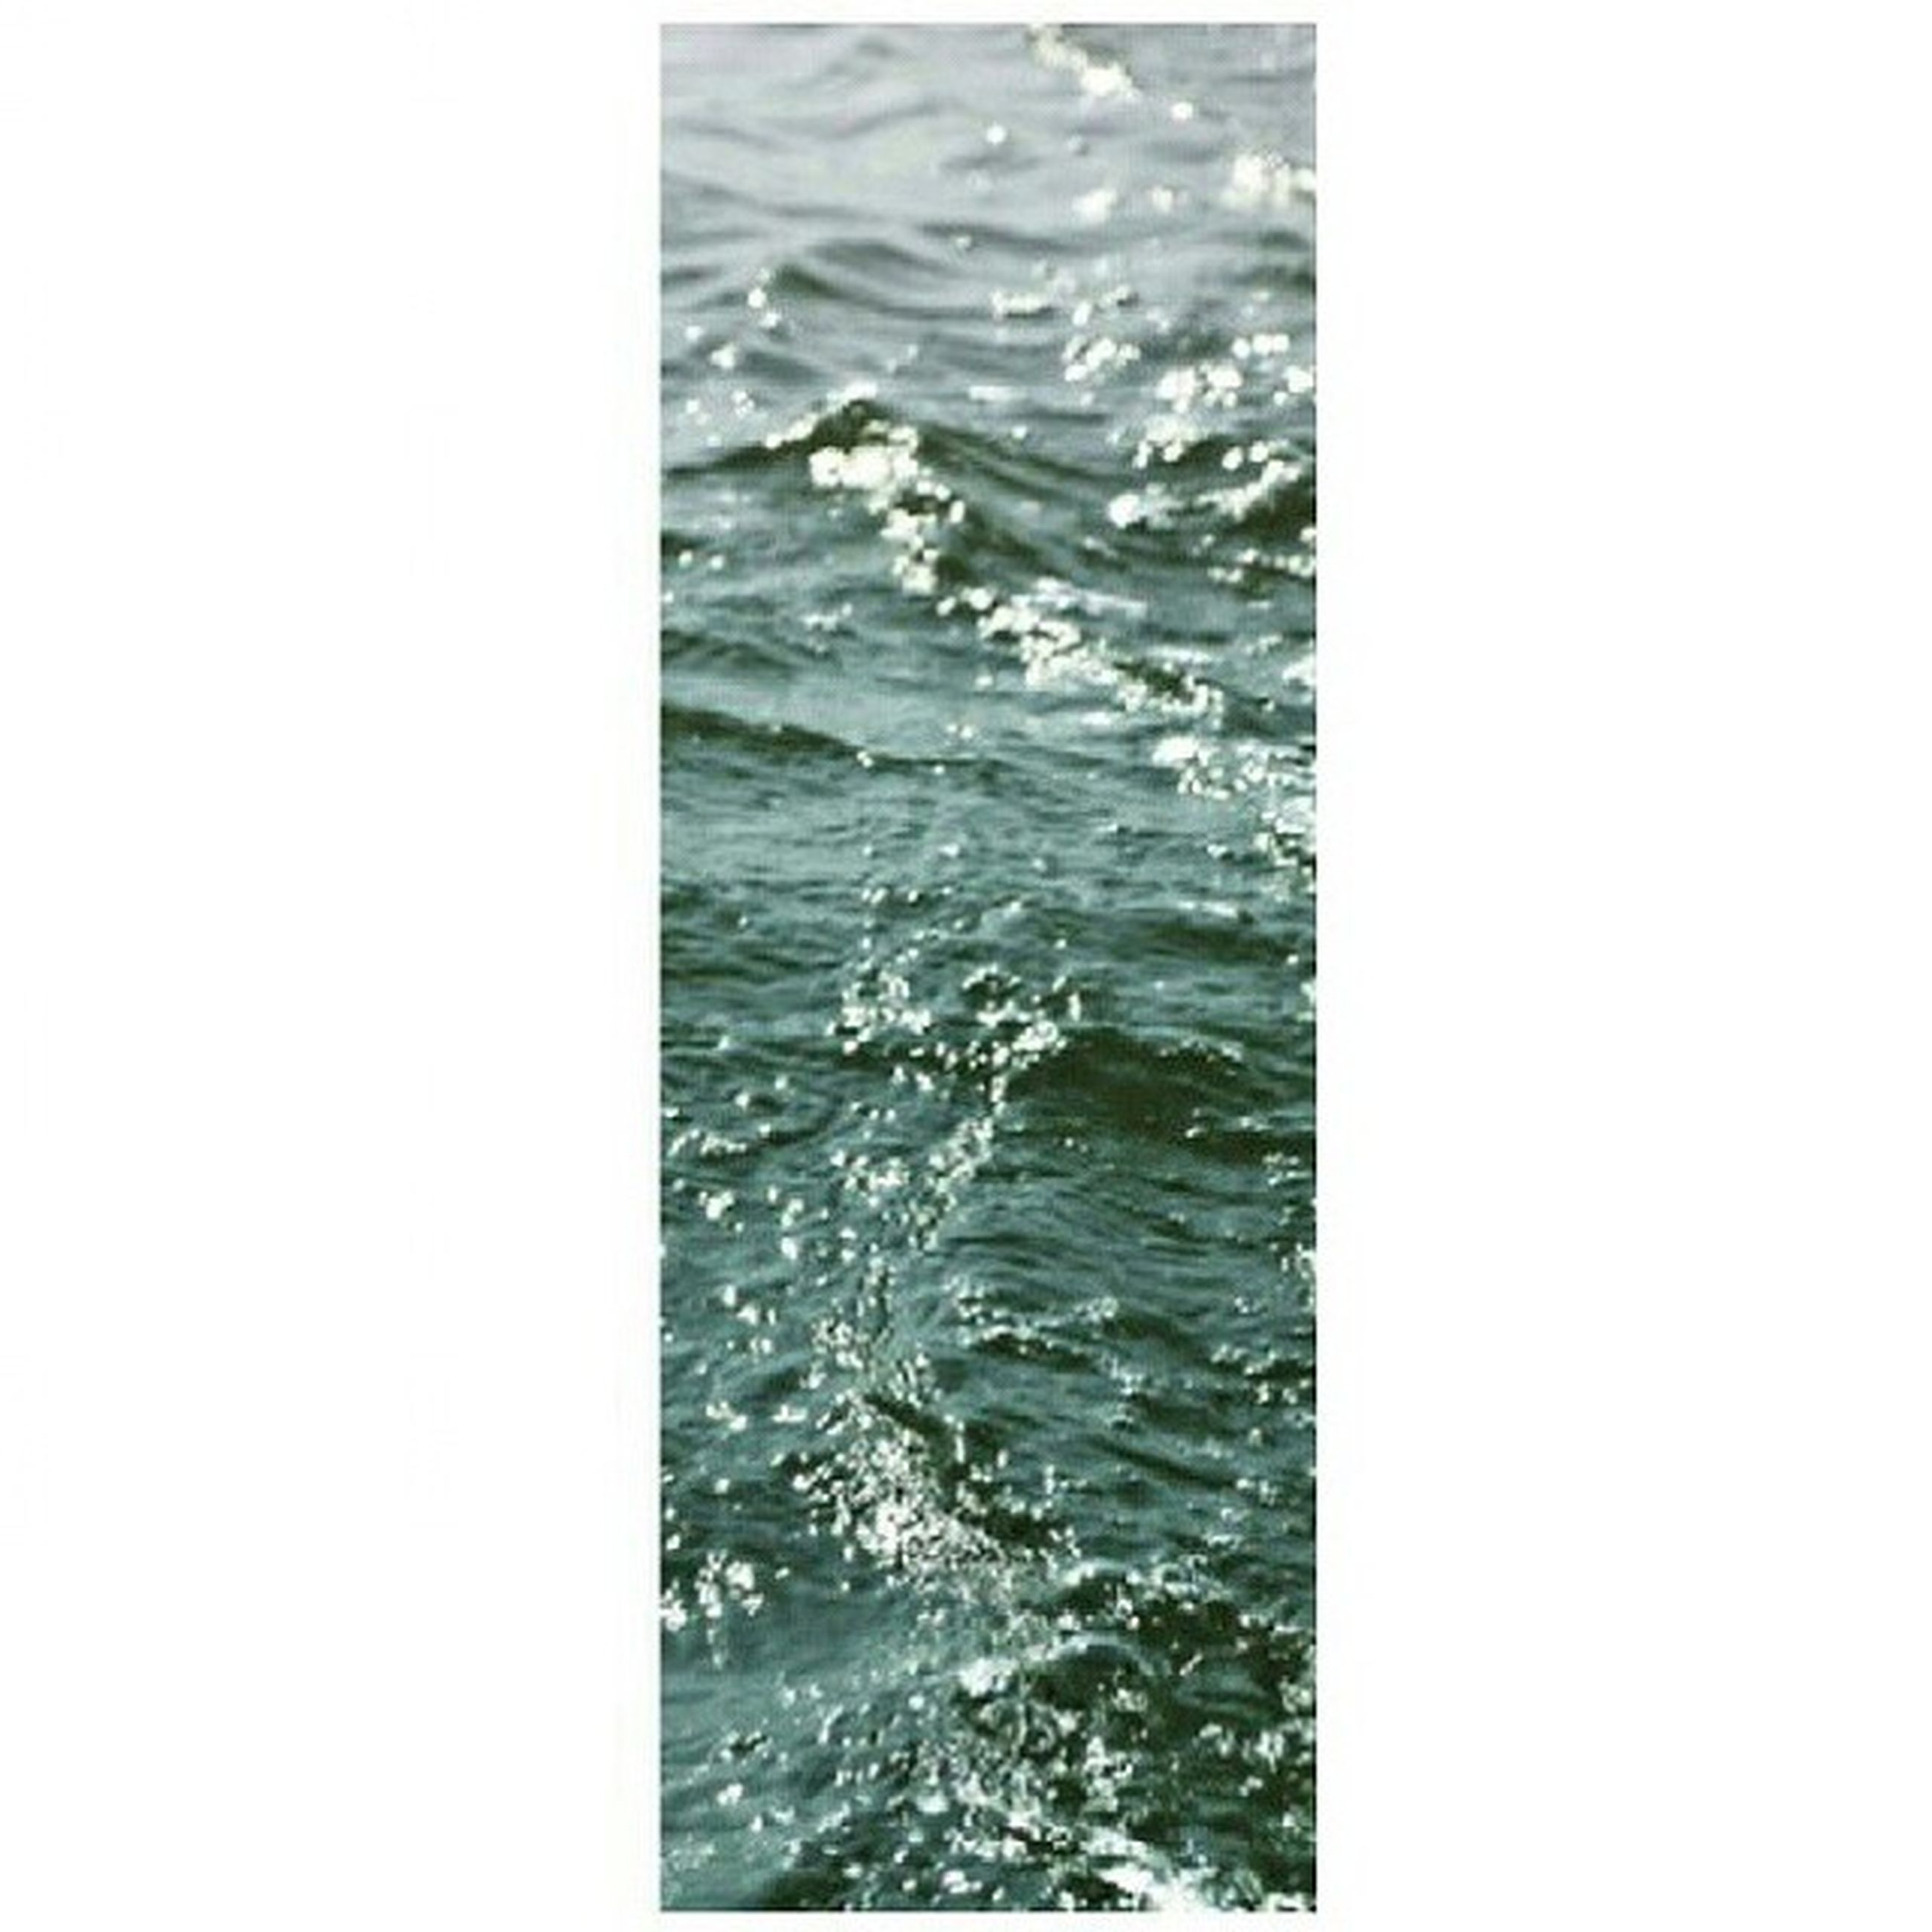 water, sea, waterfront, wave, surf, motion, splashing, rippled, beauty in nature, nature, scenics, horizon over water, clear sky, tranquility, transfer print, copy space, auto post production filter, idyllic, day, seascape